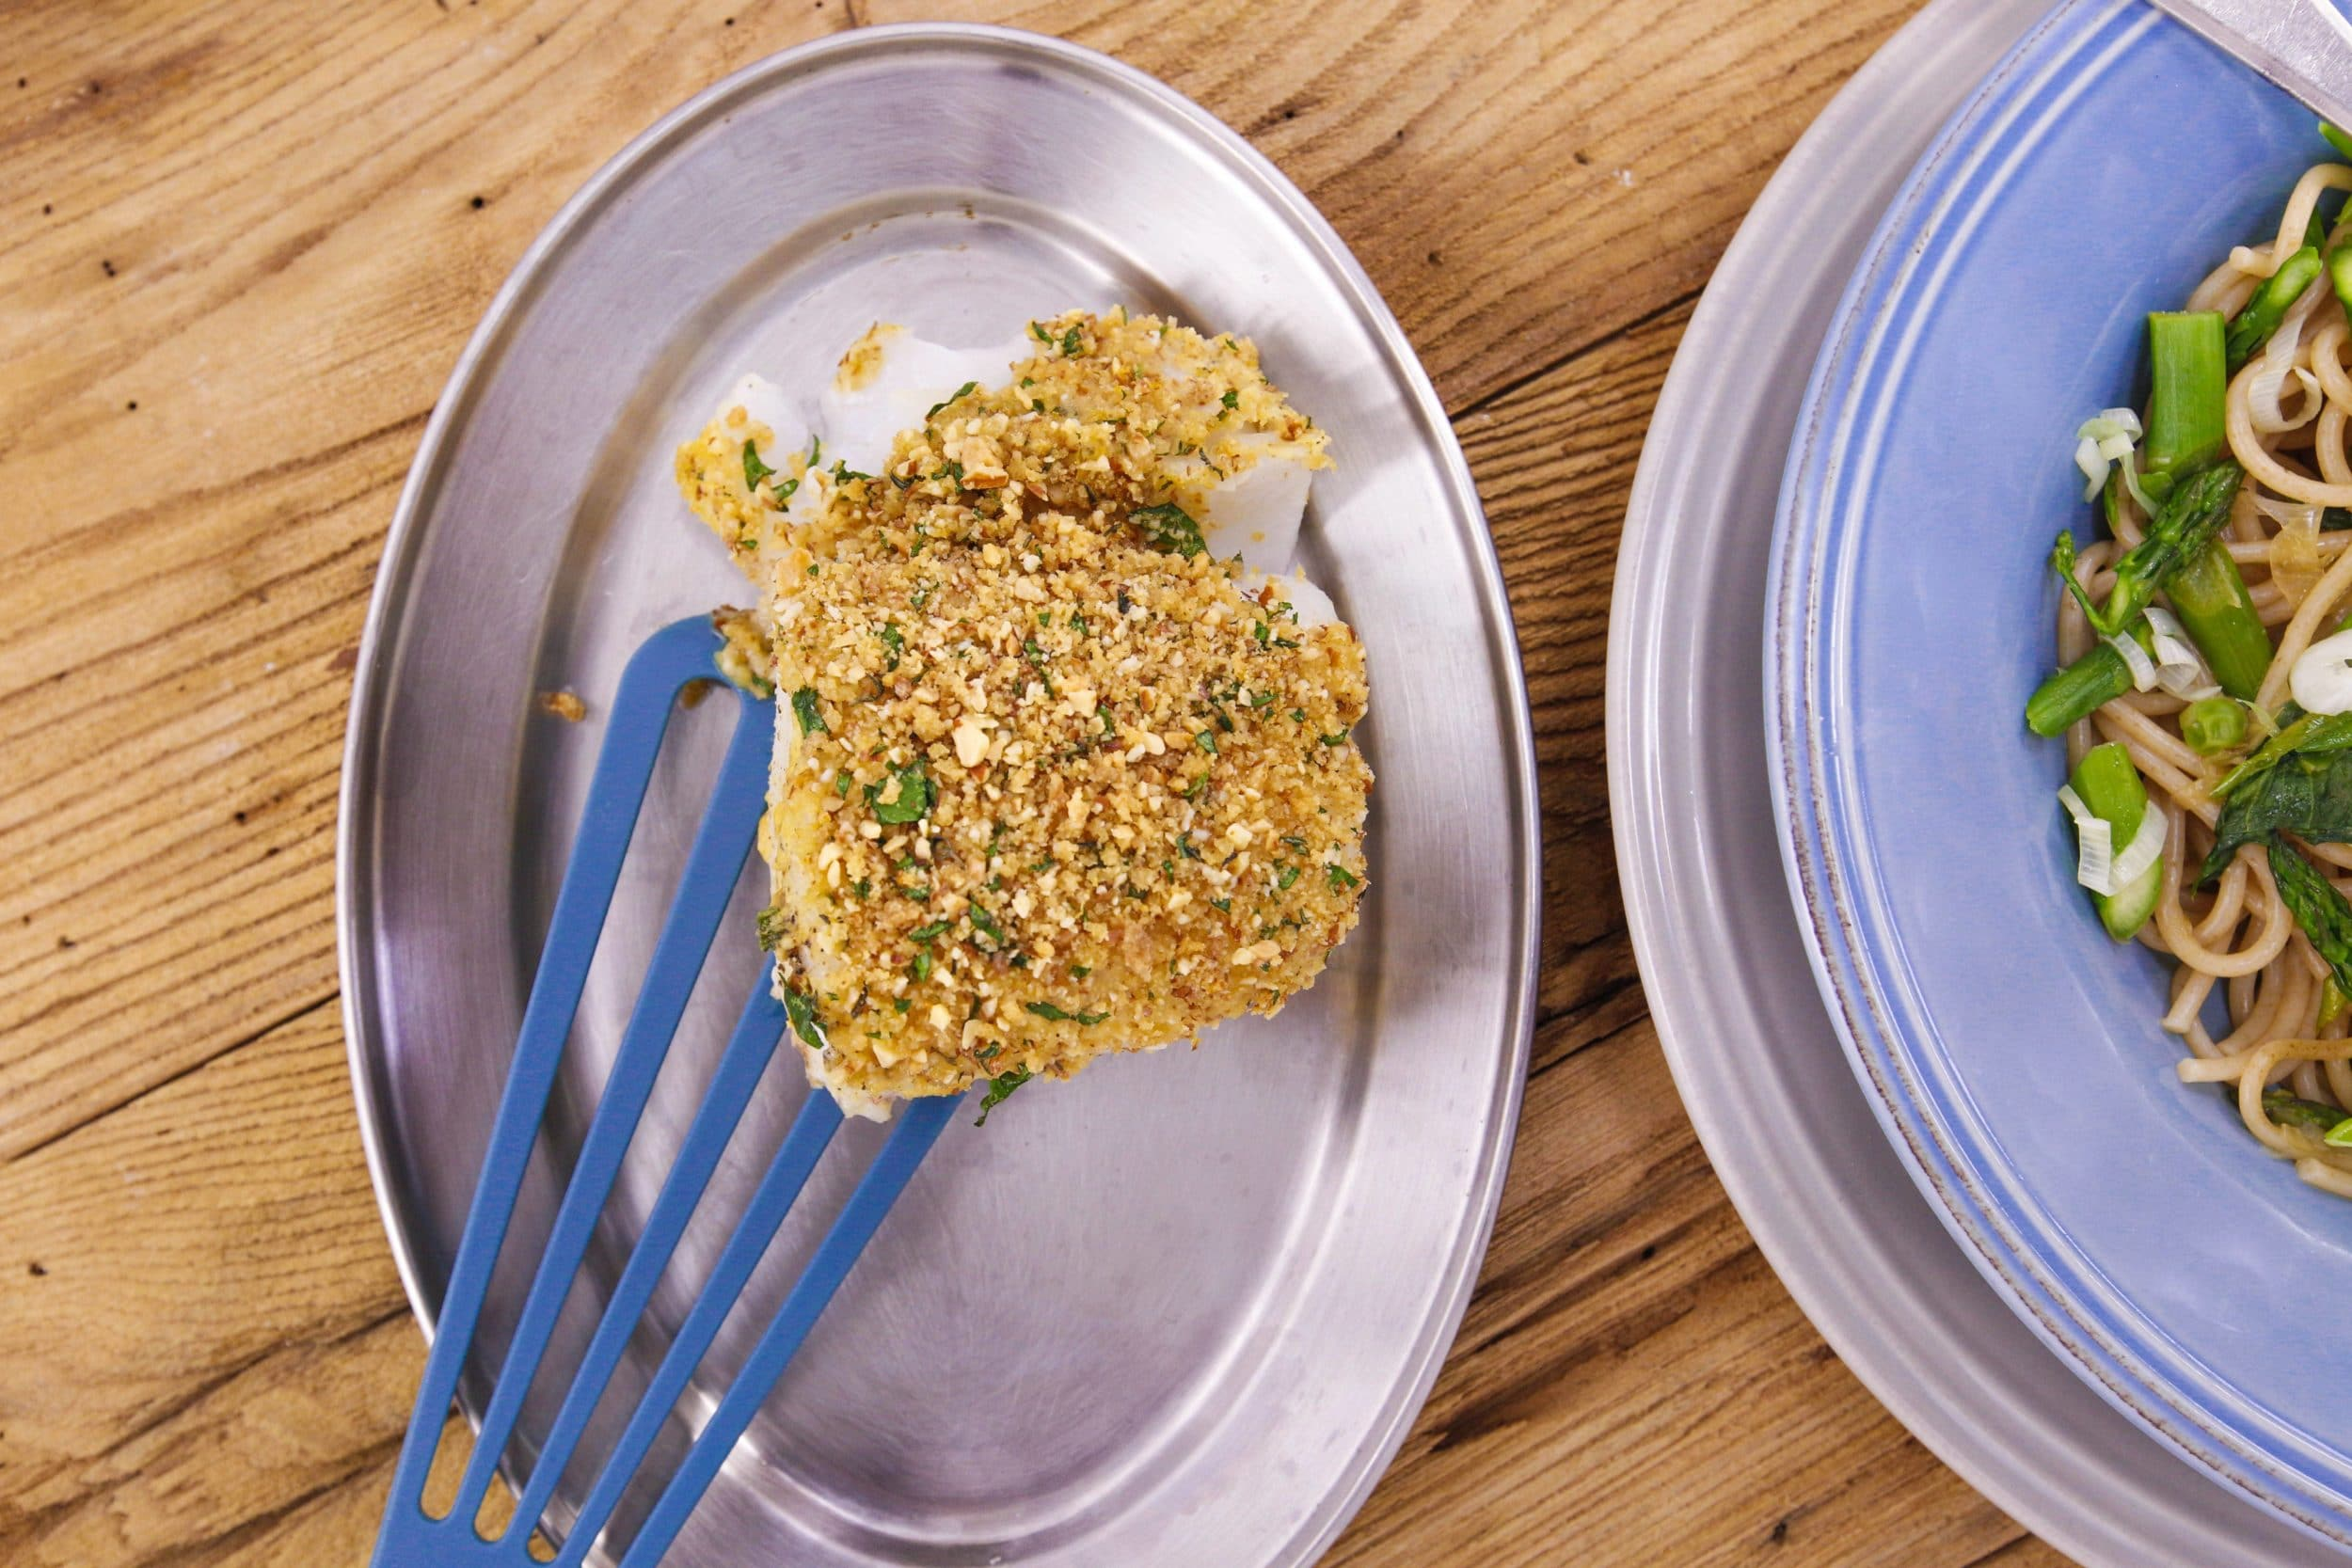 Baked Fish with Dijon and Nutty Breadcrumbs